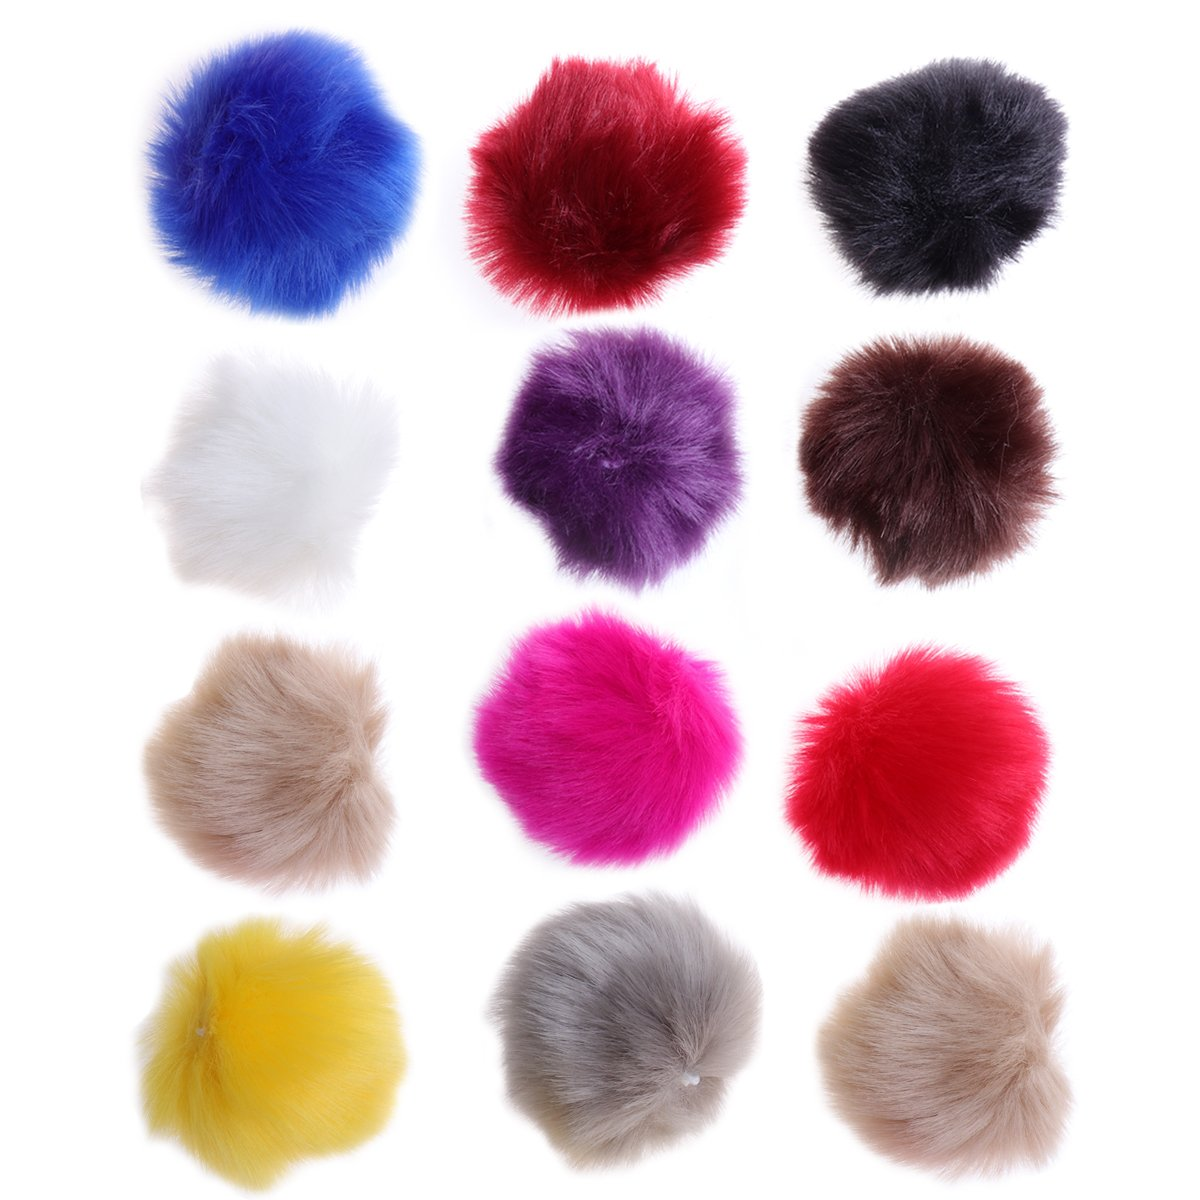 ULTNICE 12pcs Faux Fur Pom Poms DIY Fluffy Ball for Knitting Hats Scarves Bags Charms